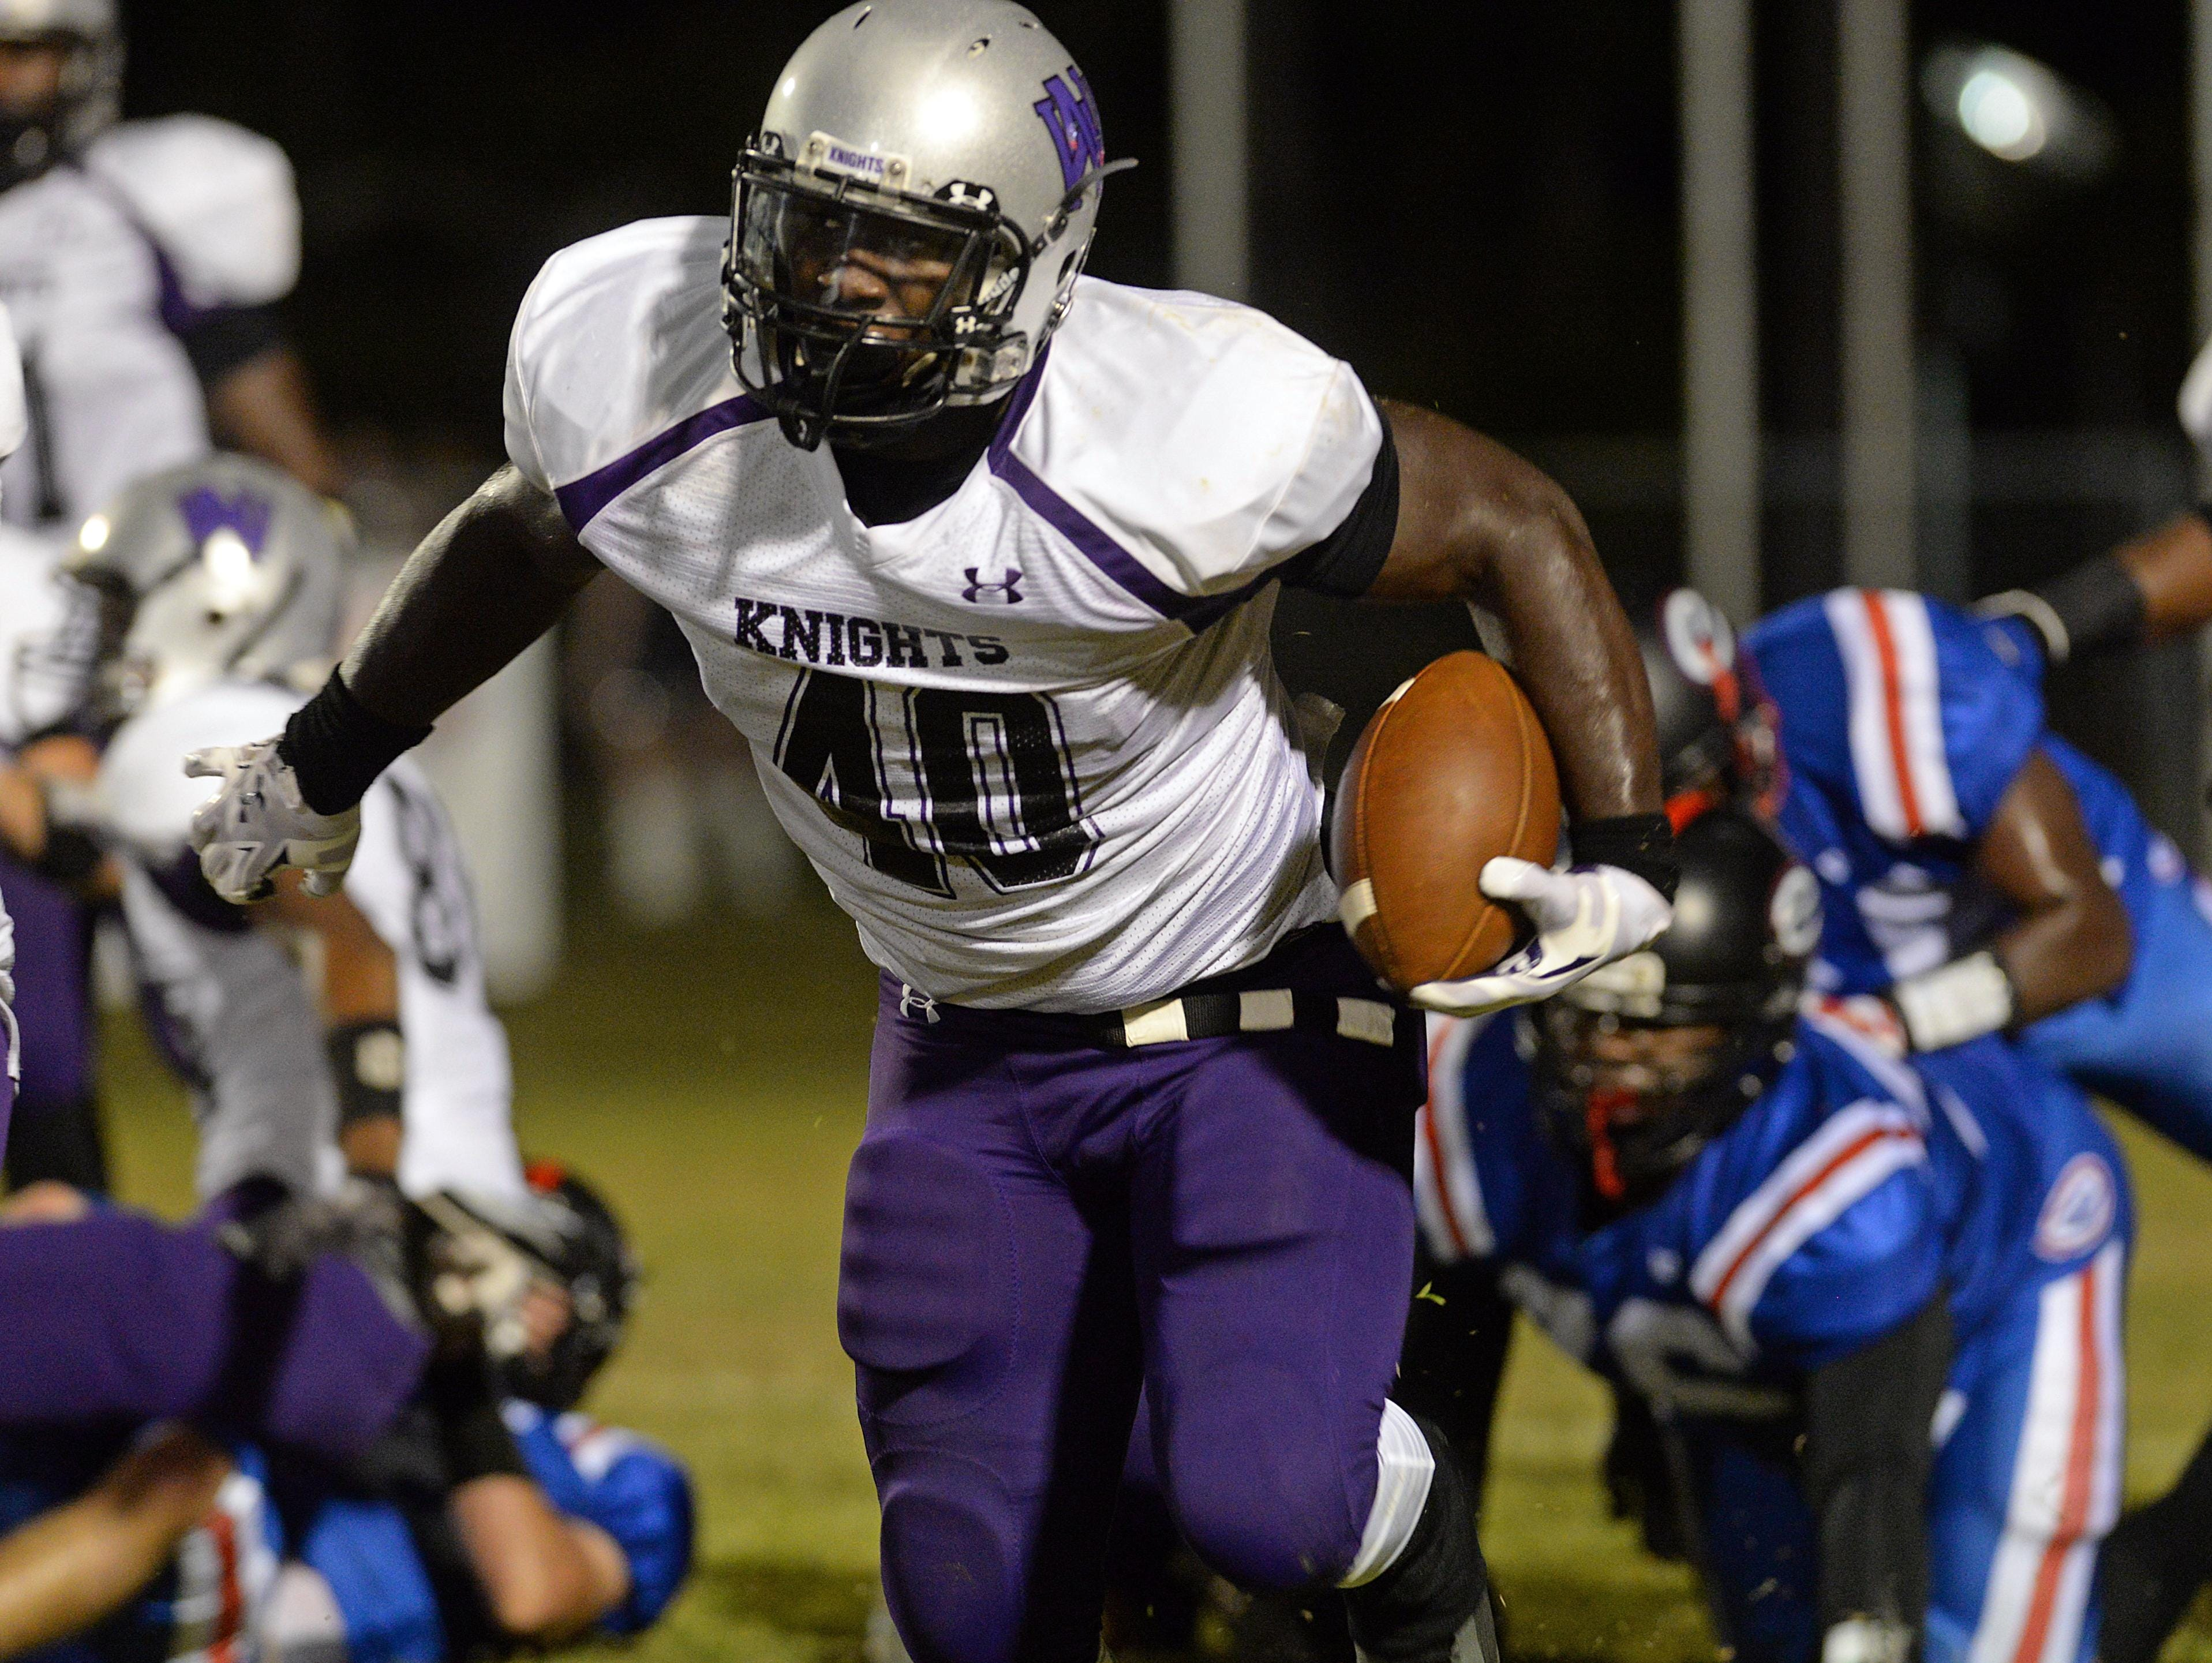 Devin White has yet to make his college choice.